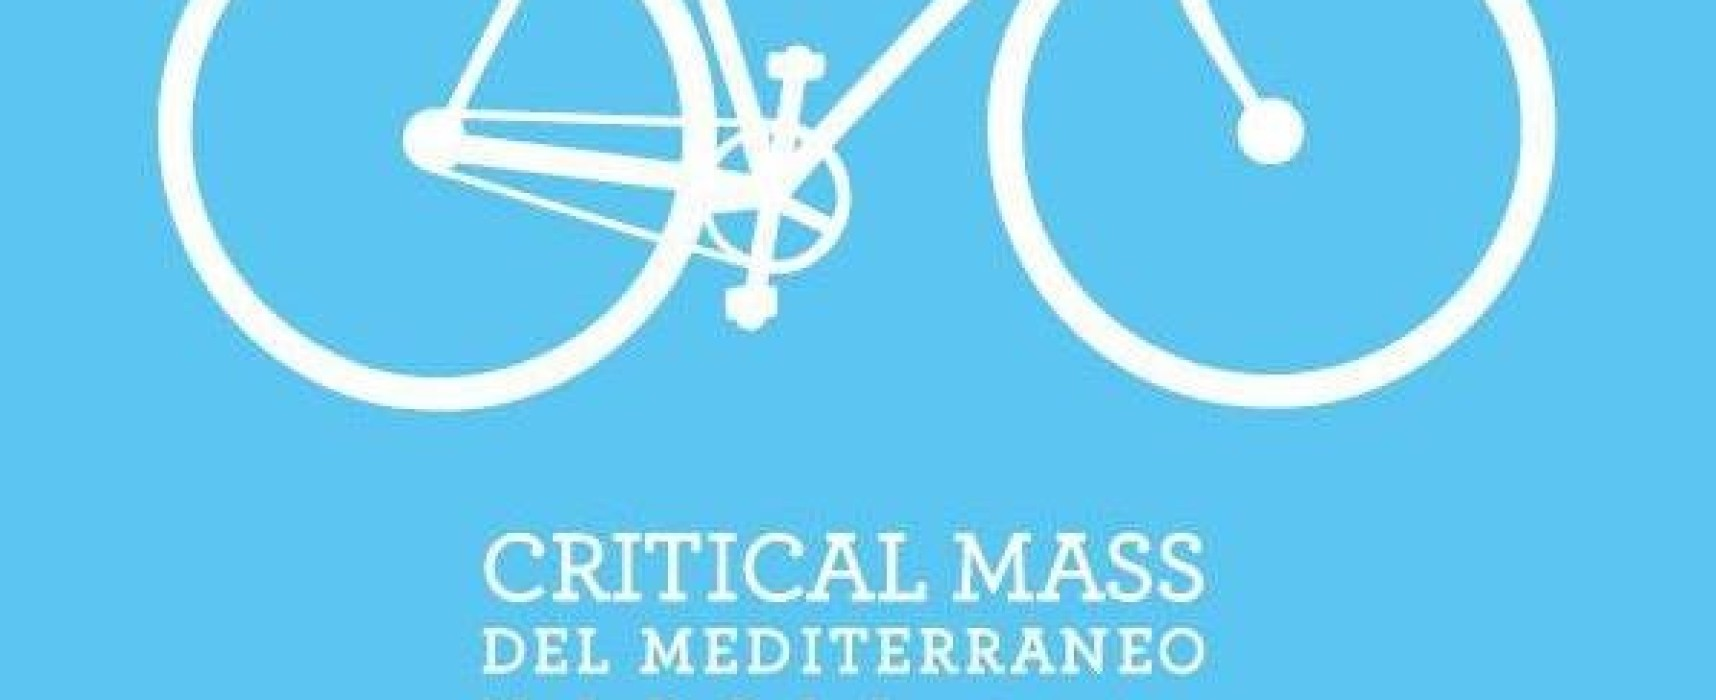 Critichell: Dust off your bike or blades and enjoy Naples city center